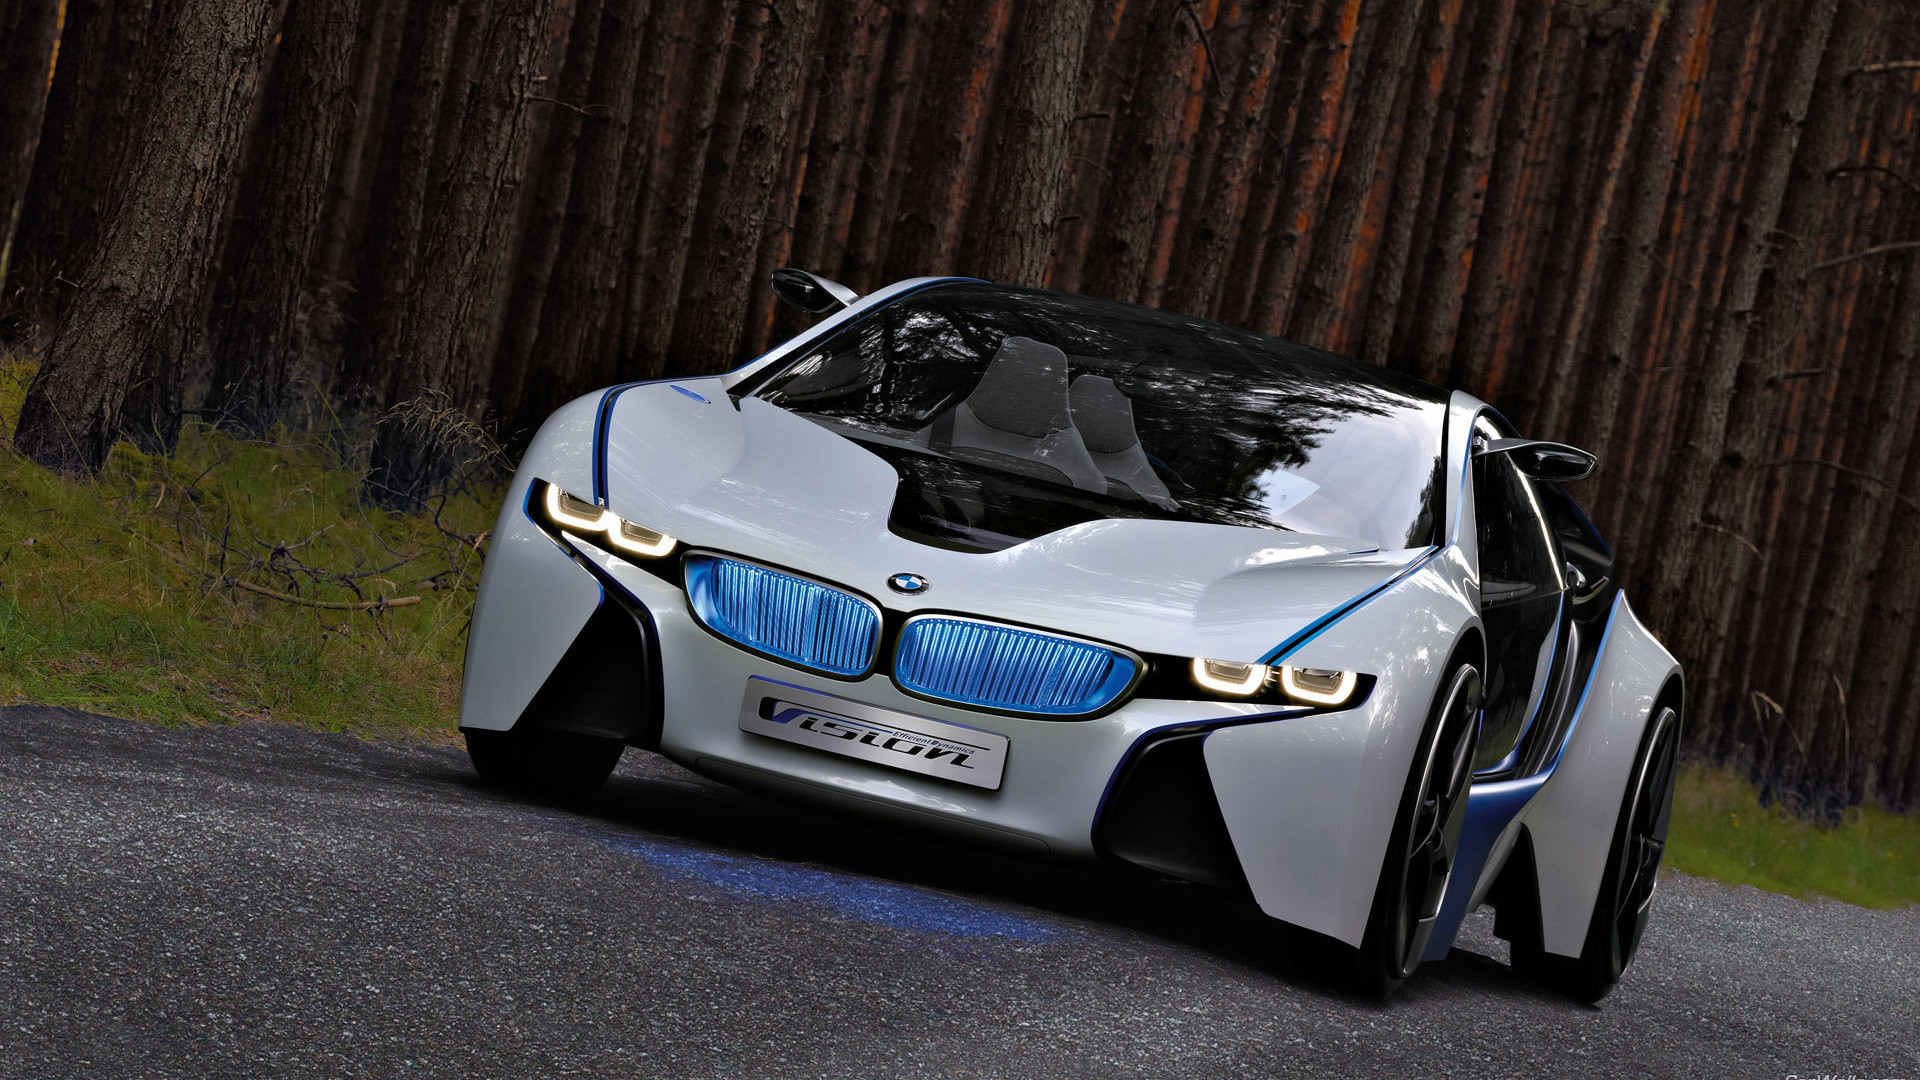 1920x1080 BMW Car 1920X1080 Pixels Full HD Wallpapers Collection - Tech Bug .